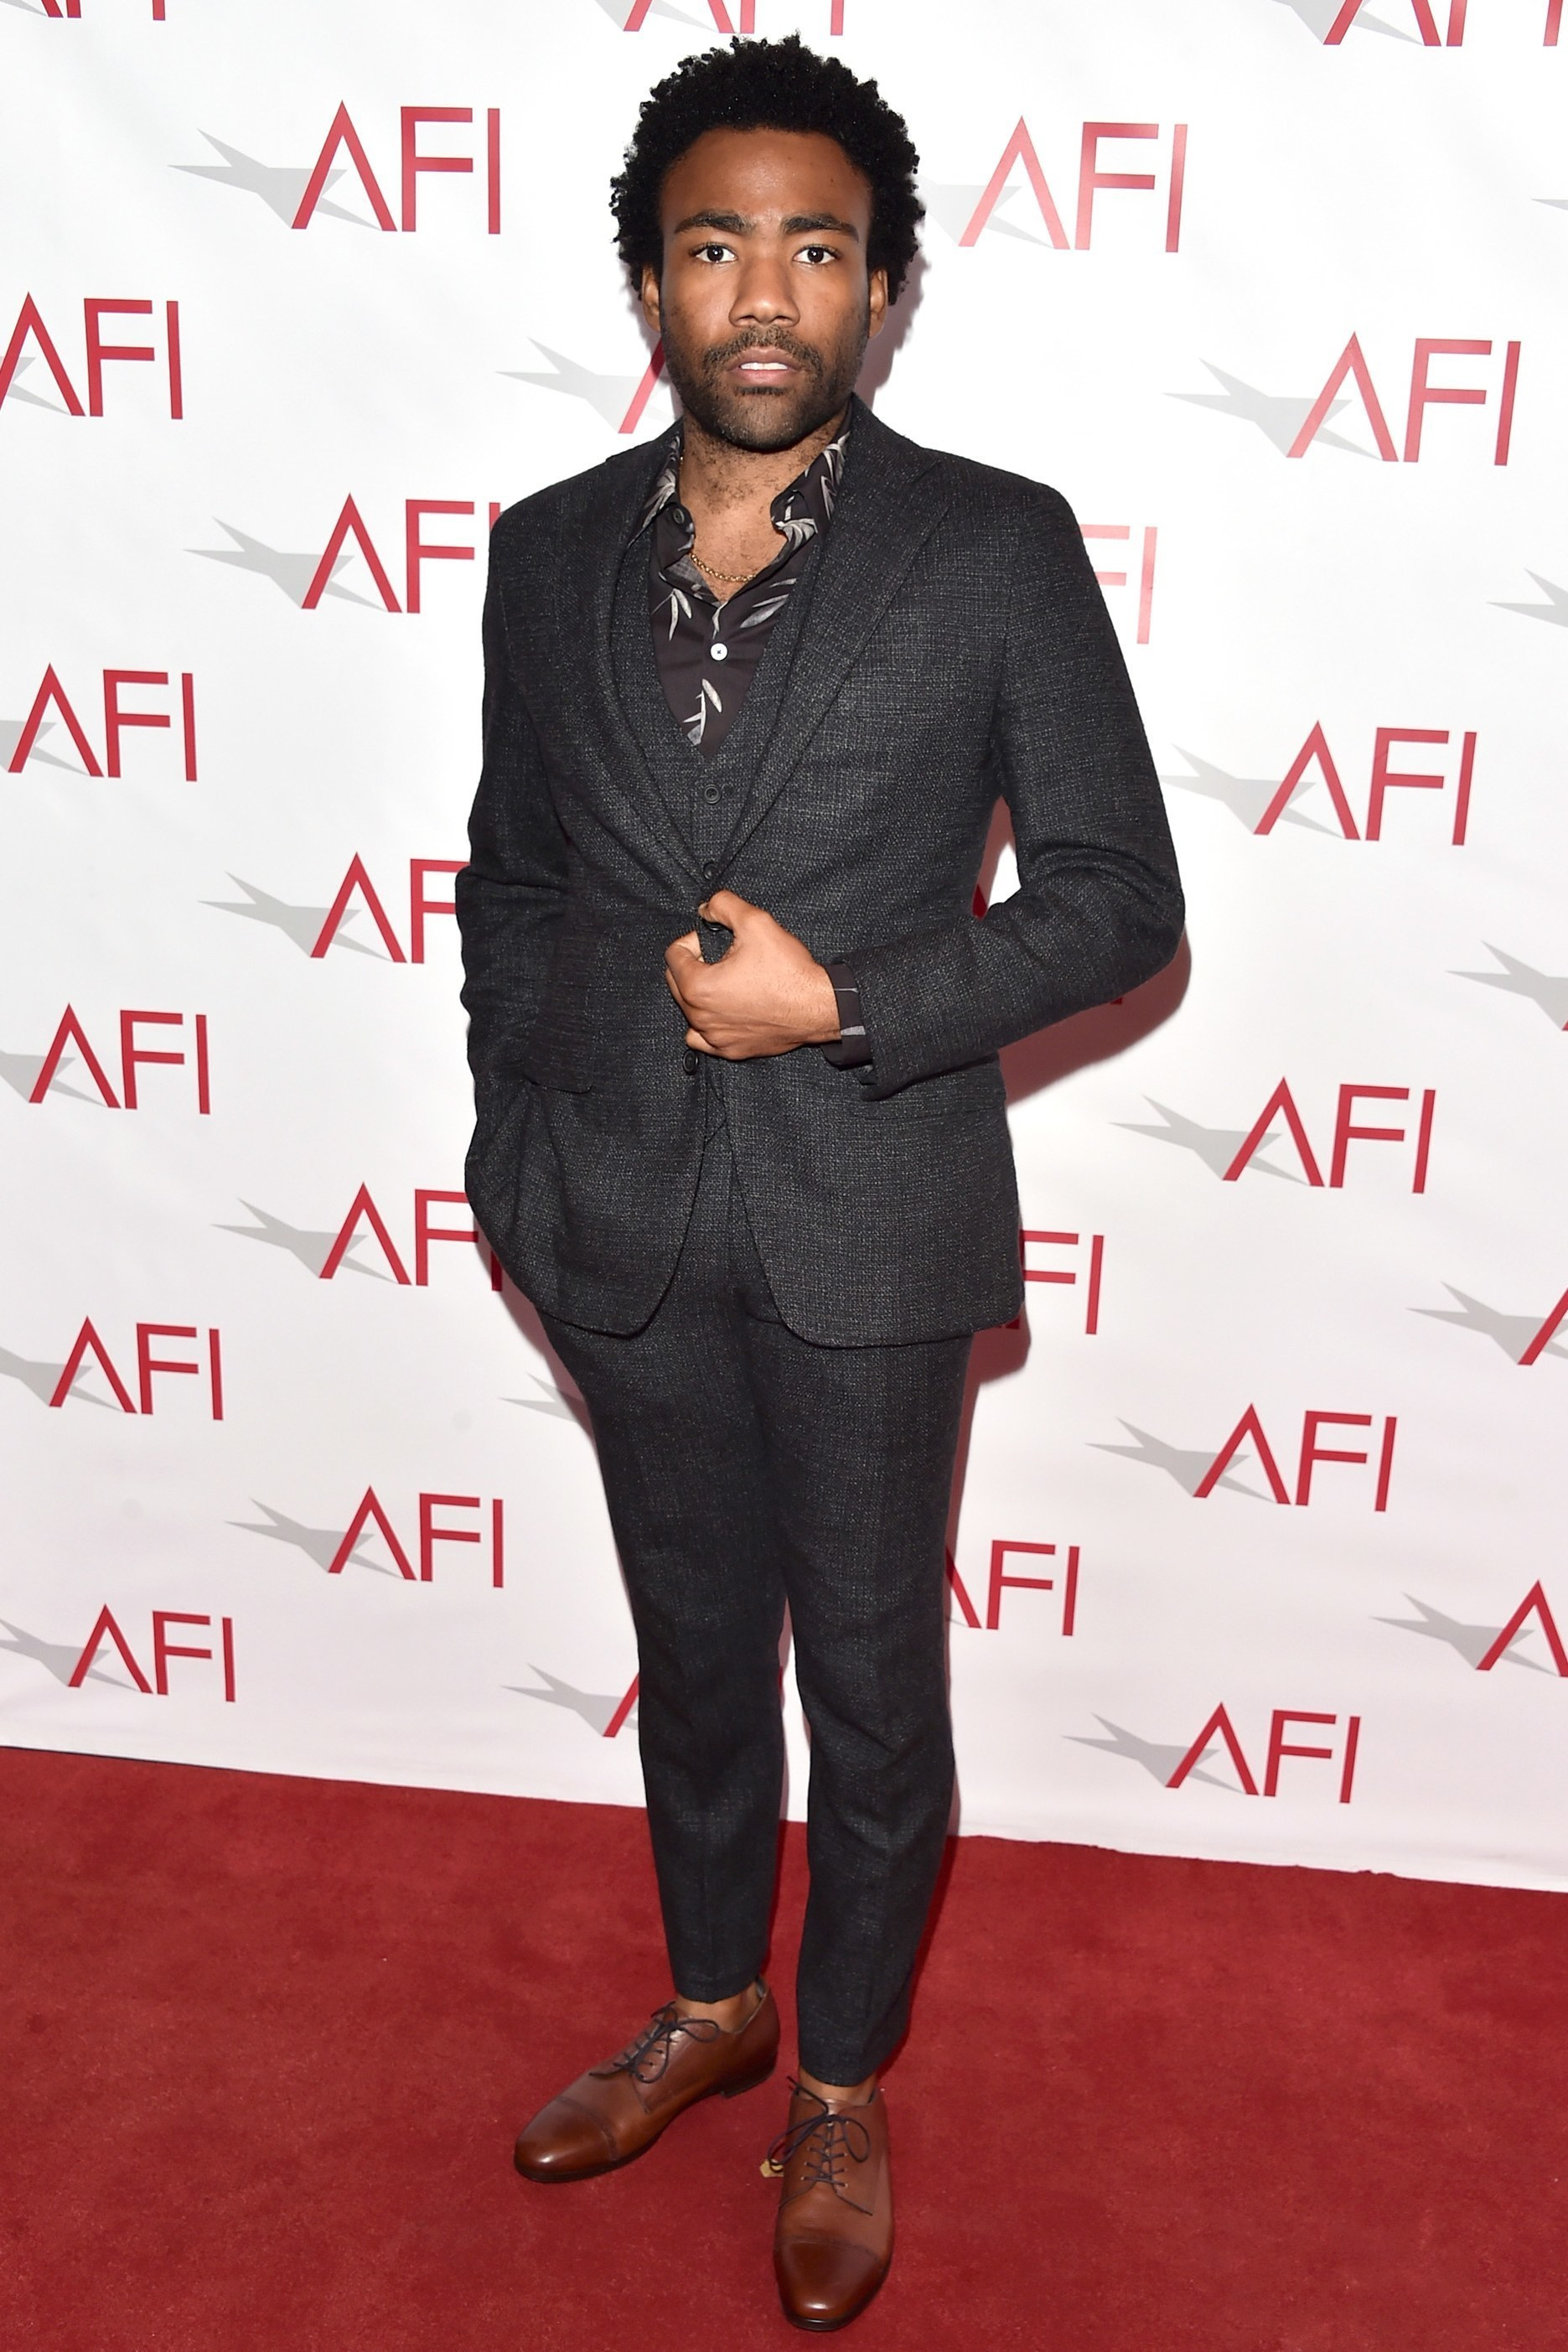 Donald Glover wearing Charcoal Wool Three Piece Suit, Black Print ...